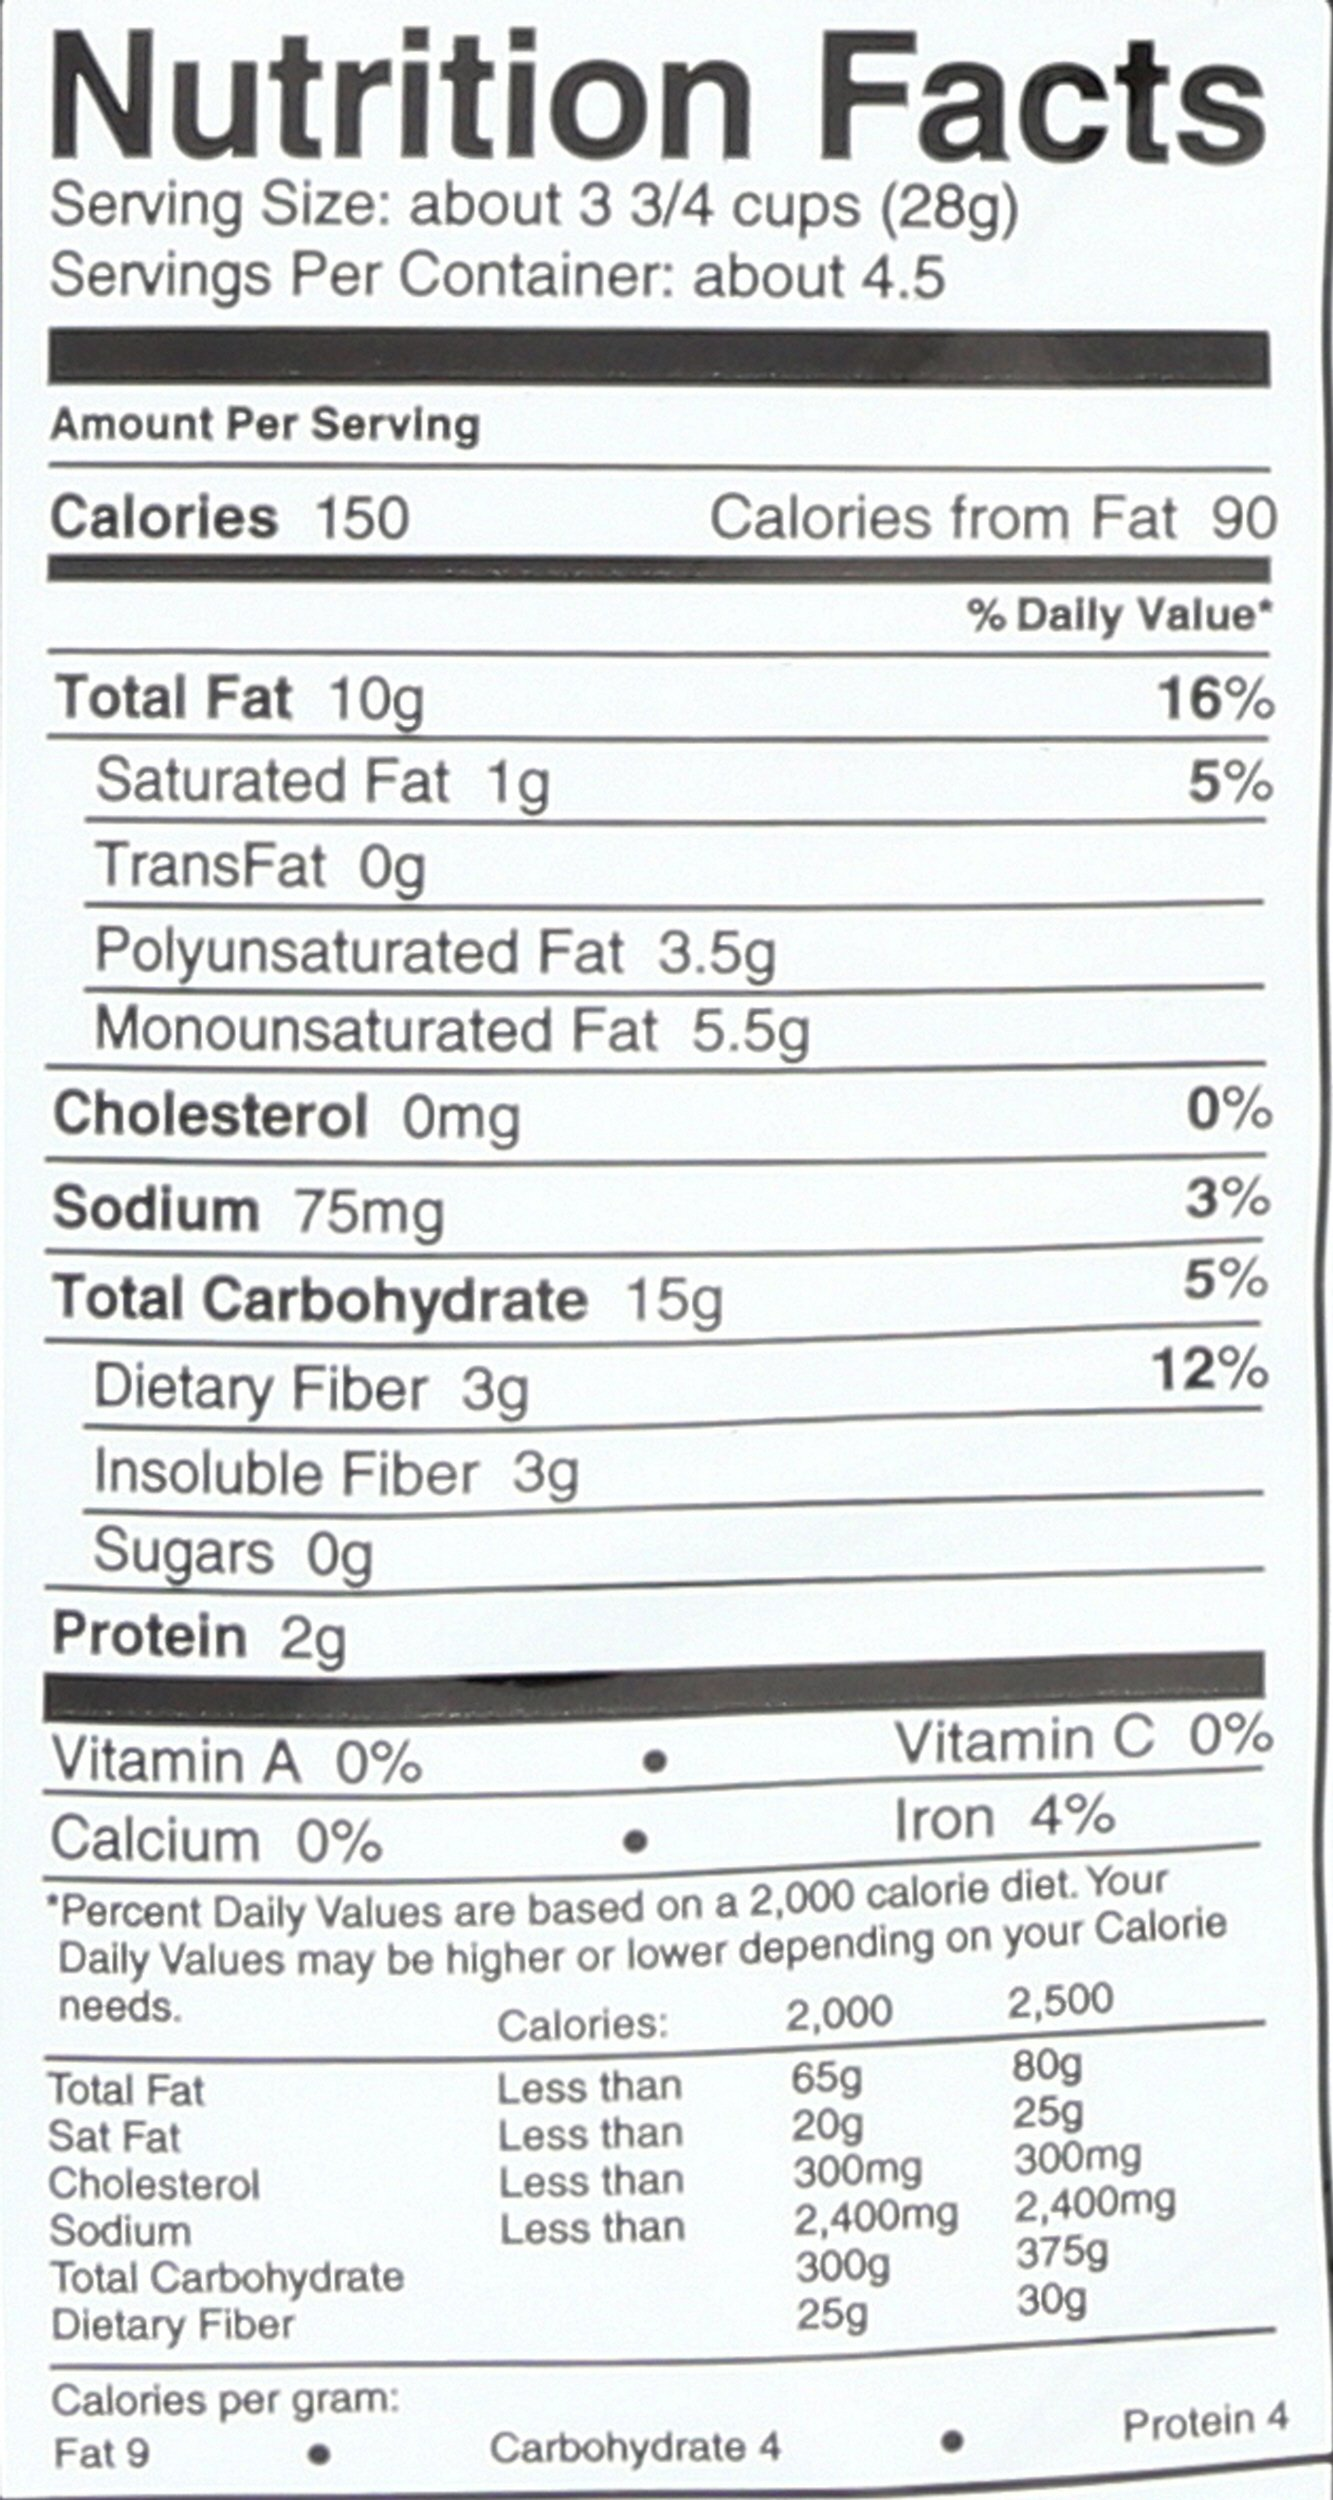 SKINNYPOP Original Popped Popcorn, Individual Bags, Gluten Free Popcorn, Non-GMO, No Artificial Ingredients, A Delicious Source of Fiber, 4.4 Ounce (Pack of 12) by SkinnyPop (Image #4)